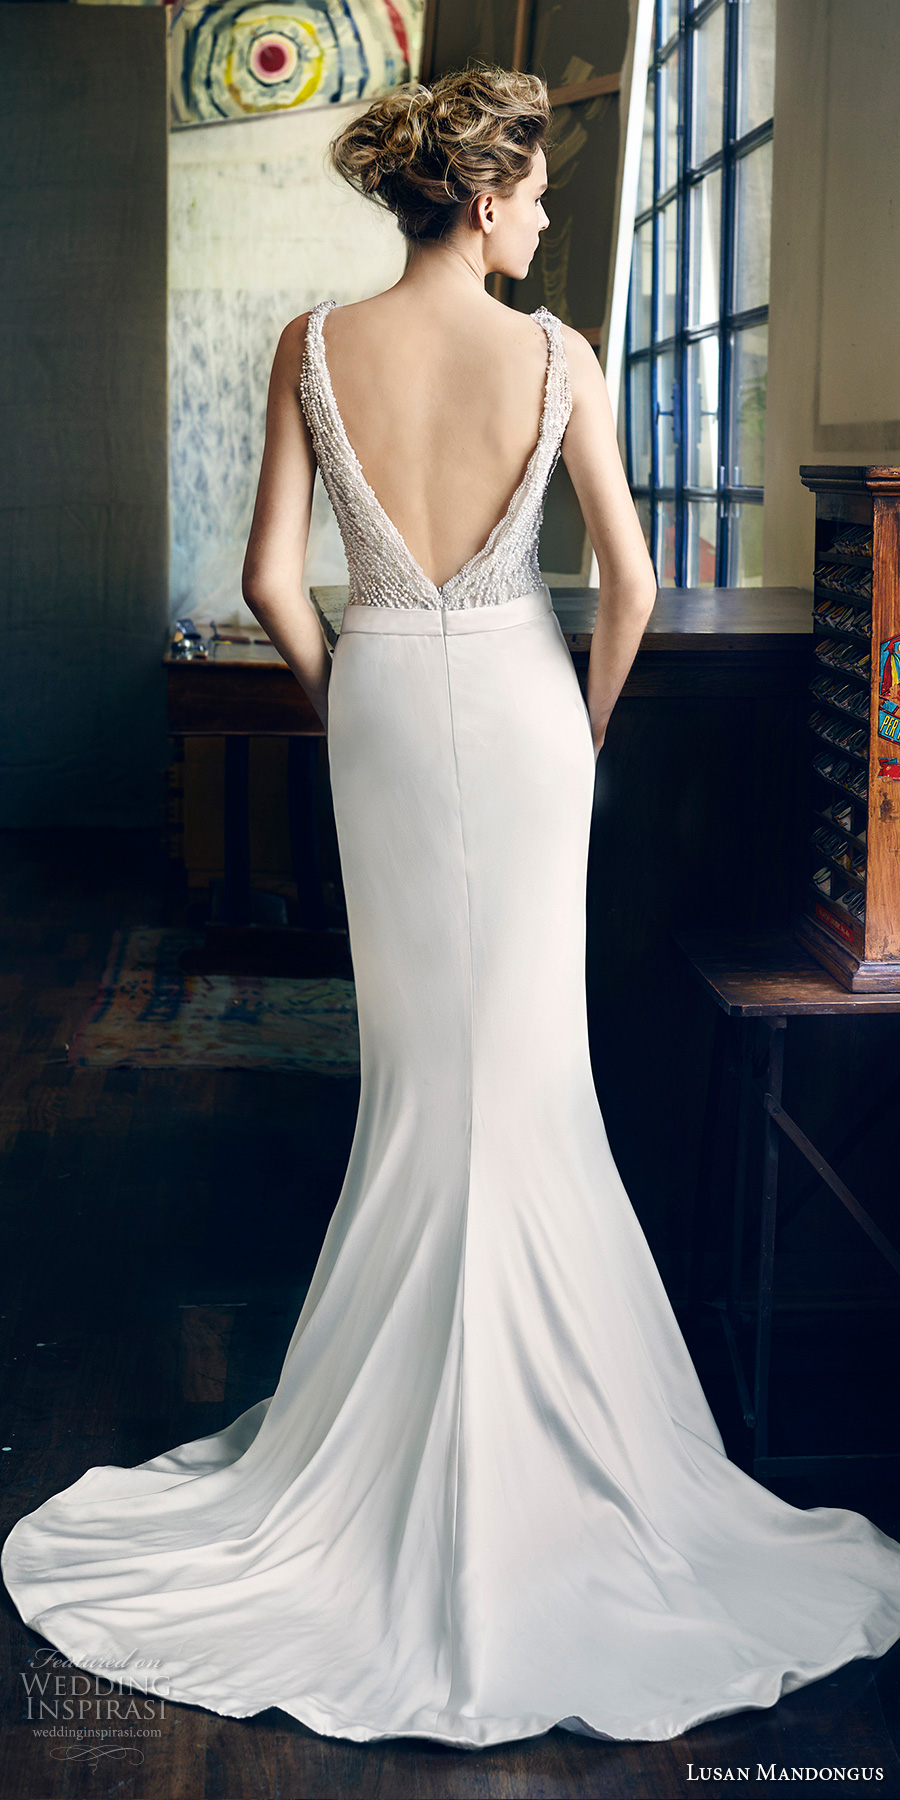 lusan mandongus 2017 bridal sleeveless deep v neck heavily embellished beaded bodice elegant glamorous sheath wedding dress open low v back sweep train (peridot) bv